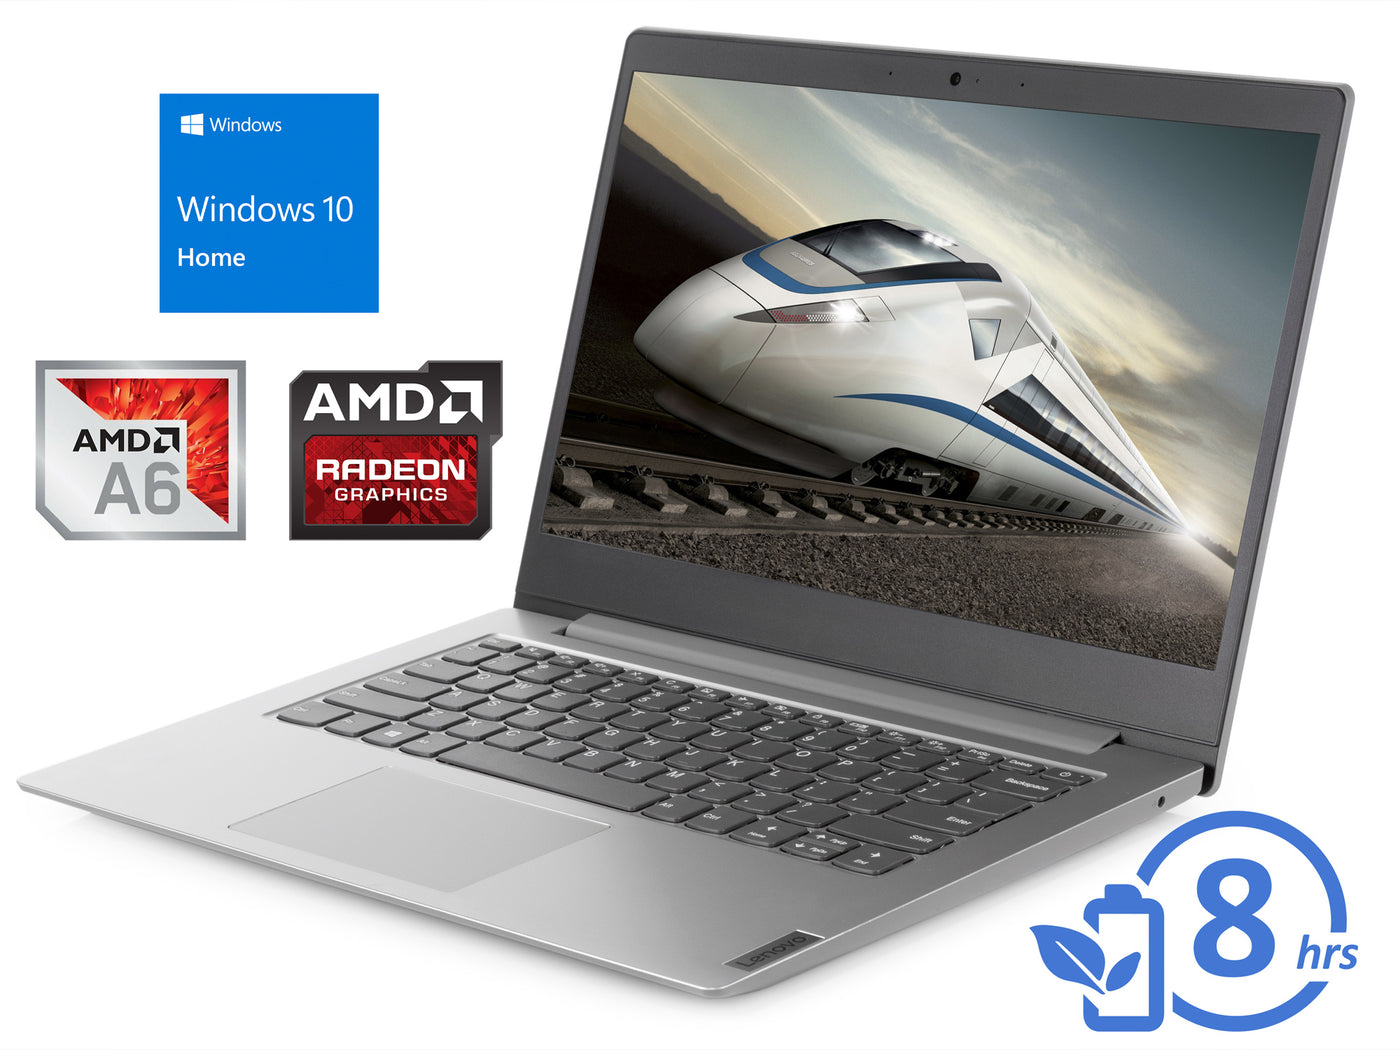 Lenovo Ideapad S150 14 Hd A6 9220e 4gb Ram 64gb Emmc Windows 10 Craving Pcs